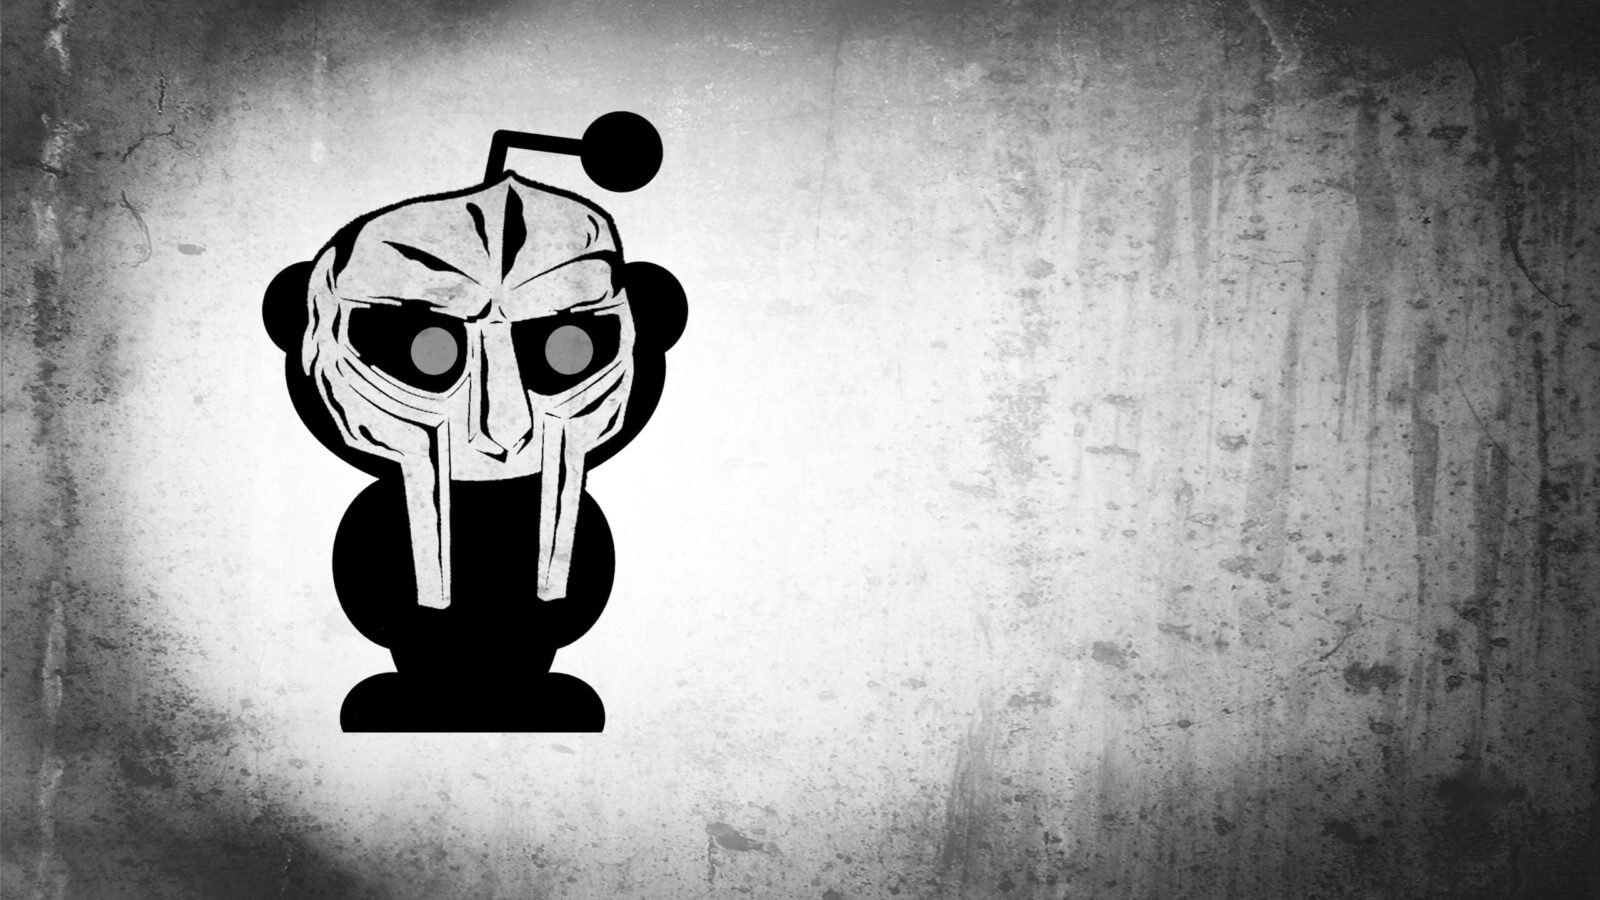 mf doom wallpaper 9 - photo #26